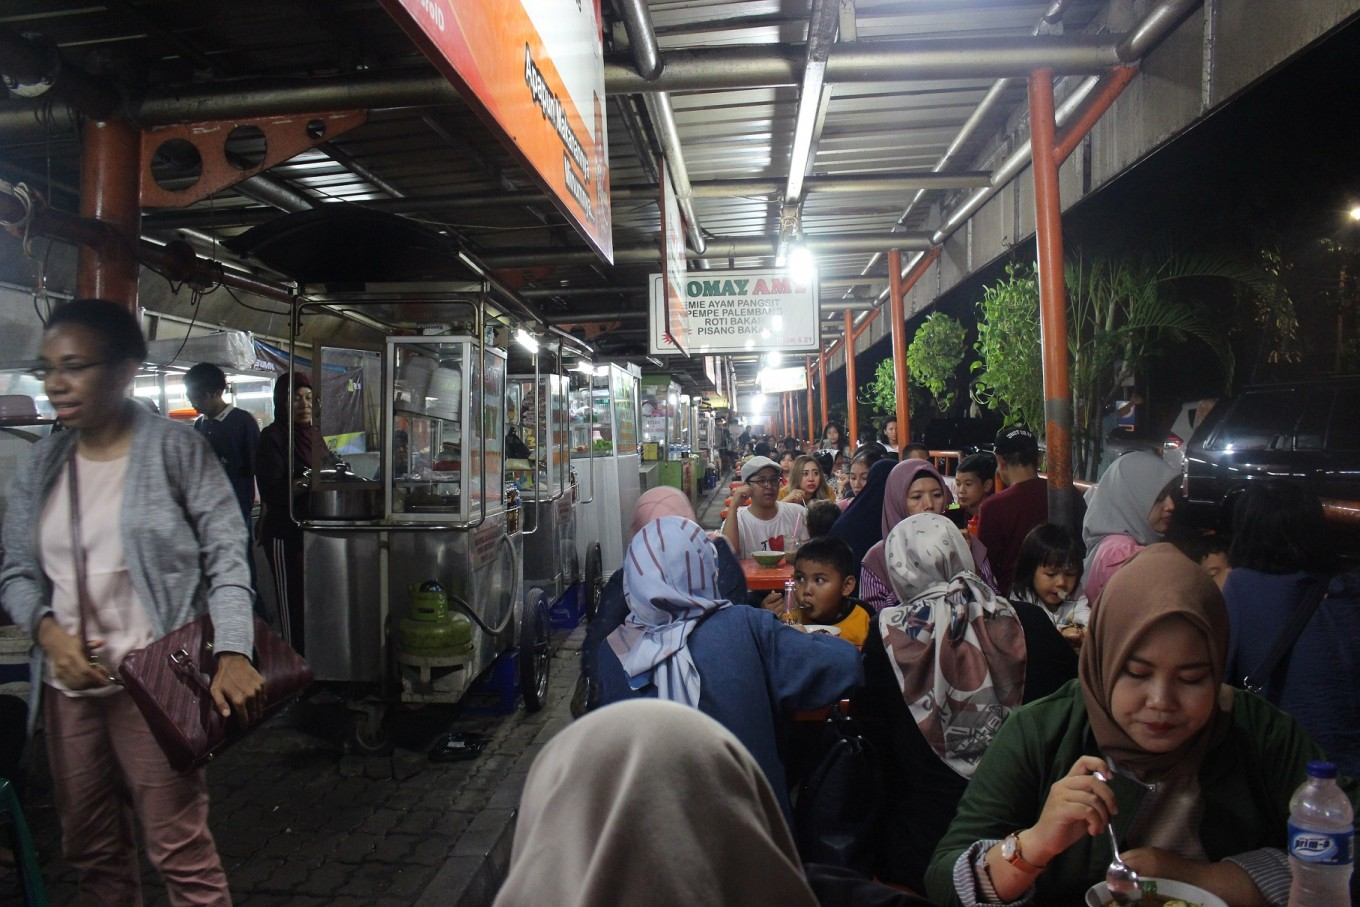 Dear Jakartans, here are some healthier street food options